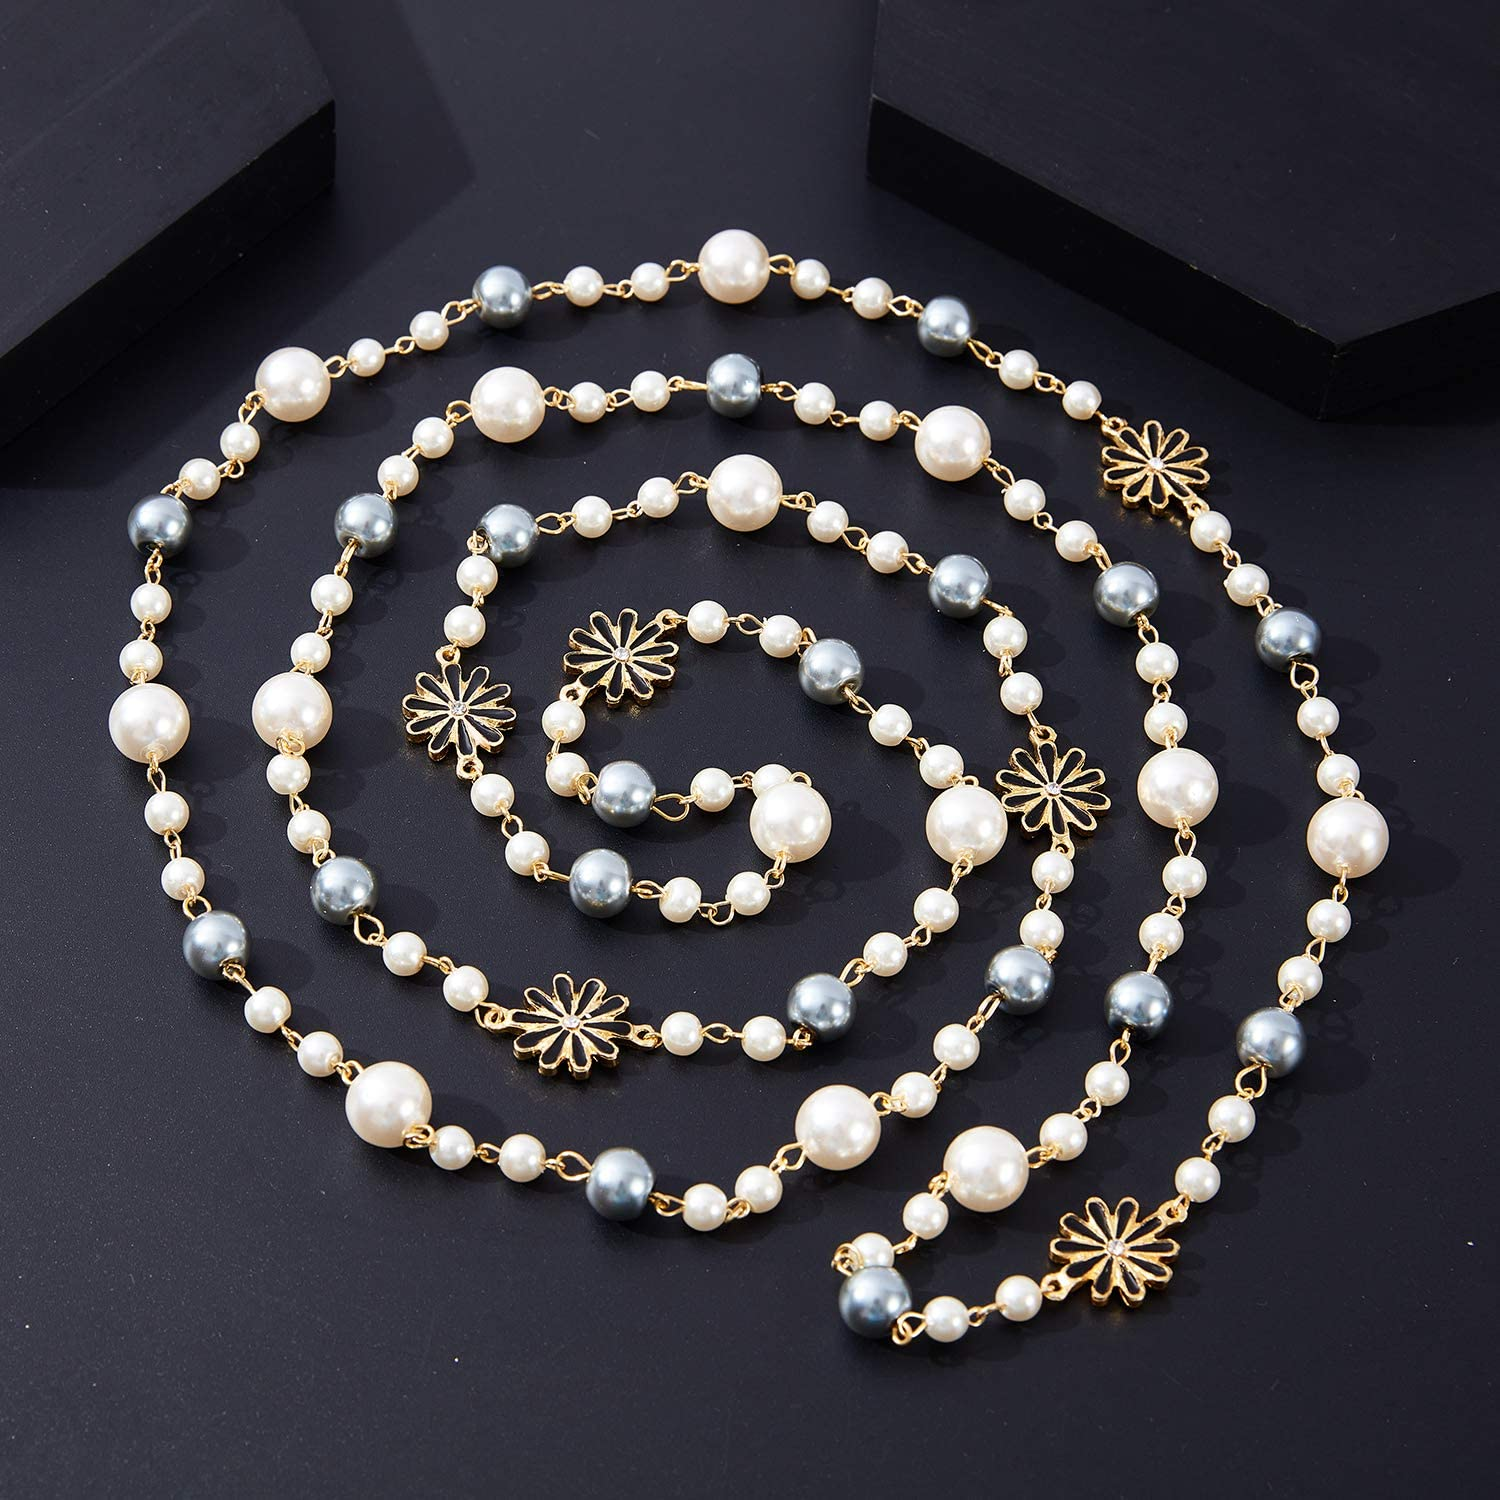 Long Simulated Pearl Necklace Layered – Multi Strand Shell Pearl Chic Sweater Necklace Vintage Pearl Necklace for Women and Girls